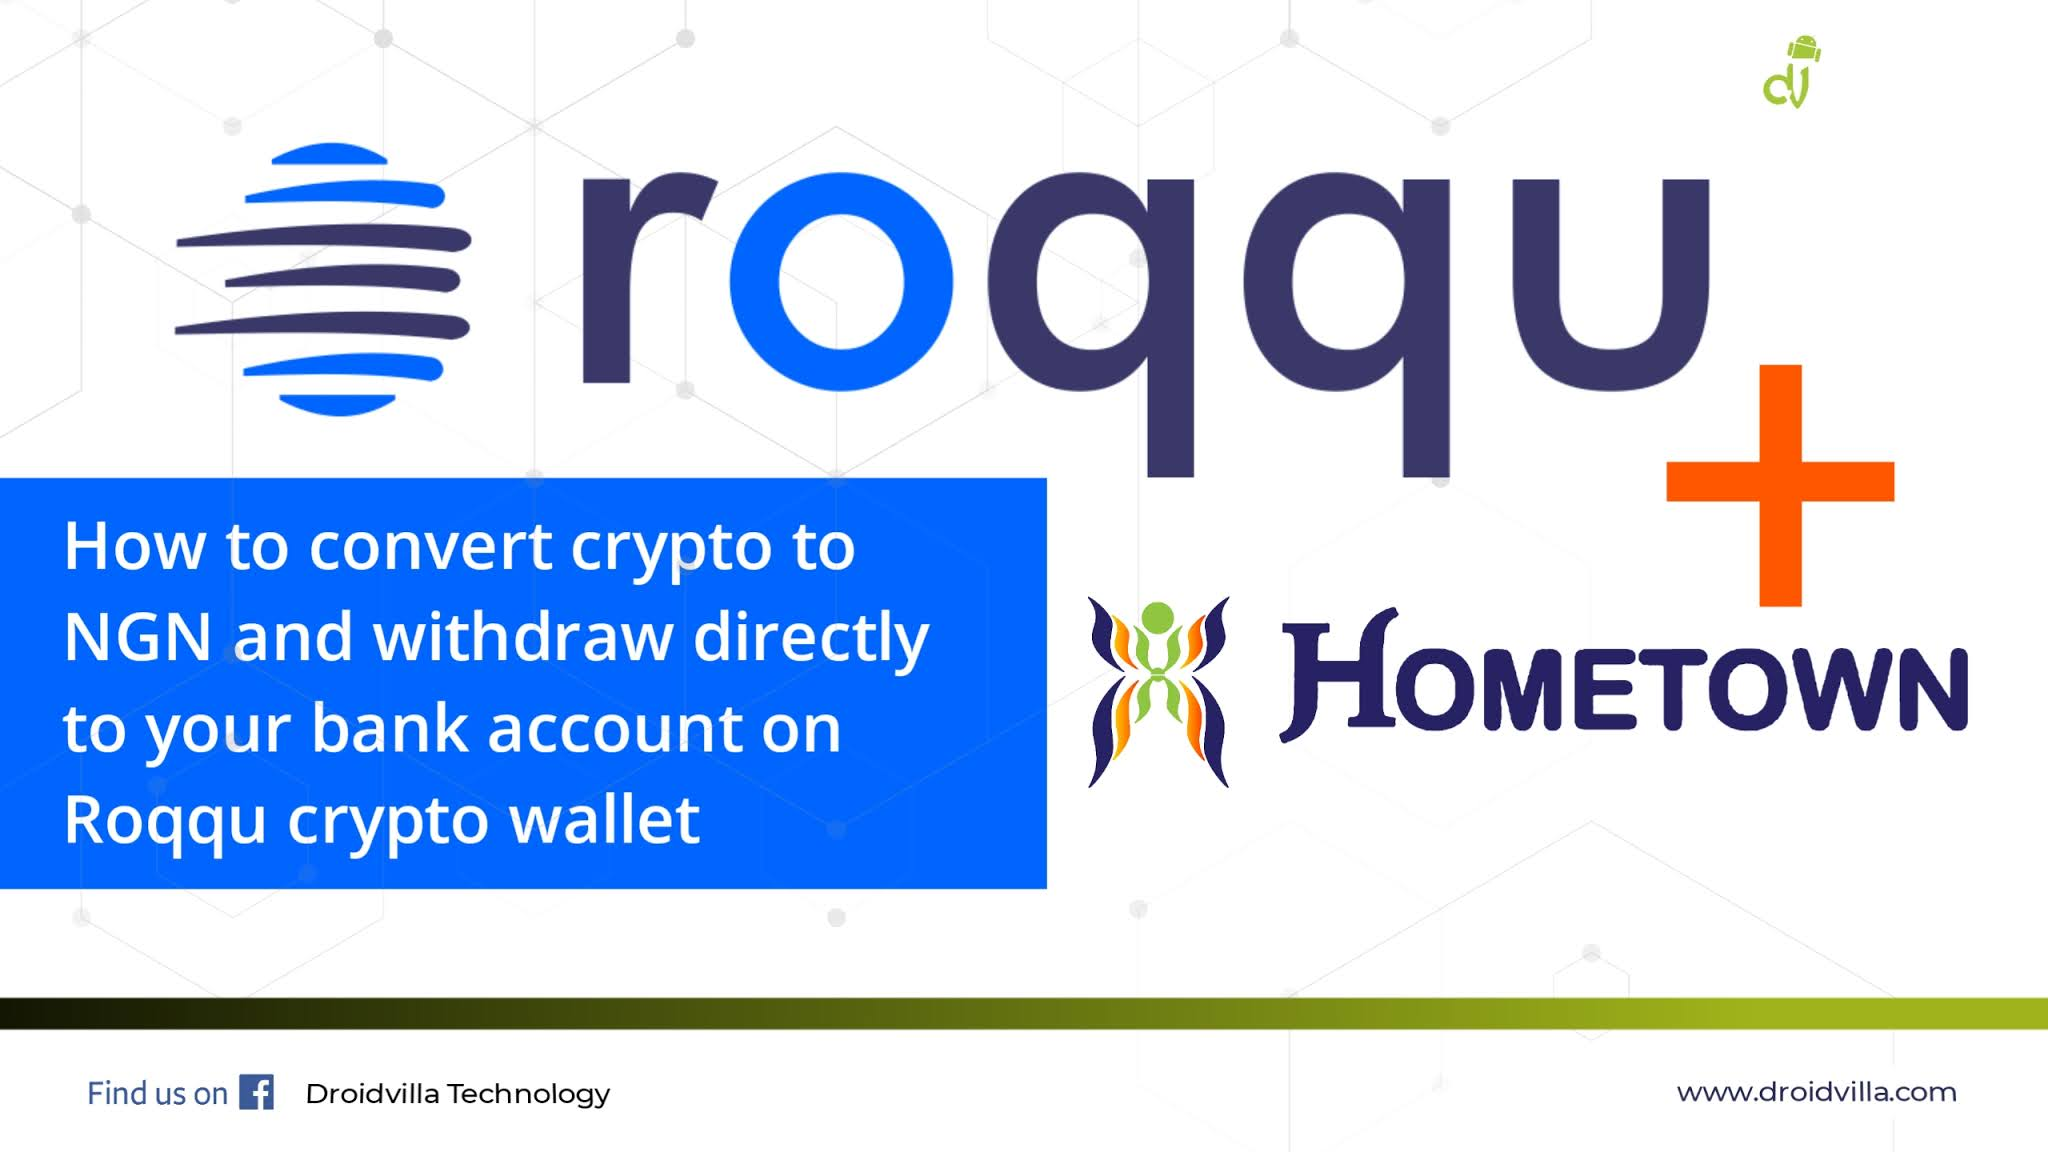 Roqqu Crypto and hometown